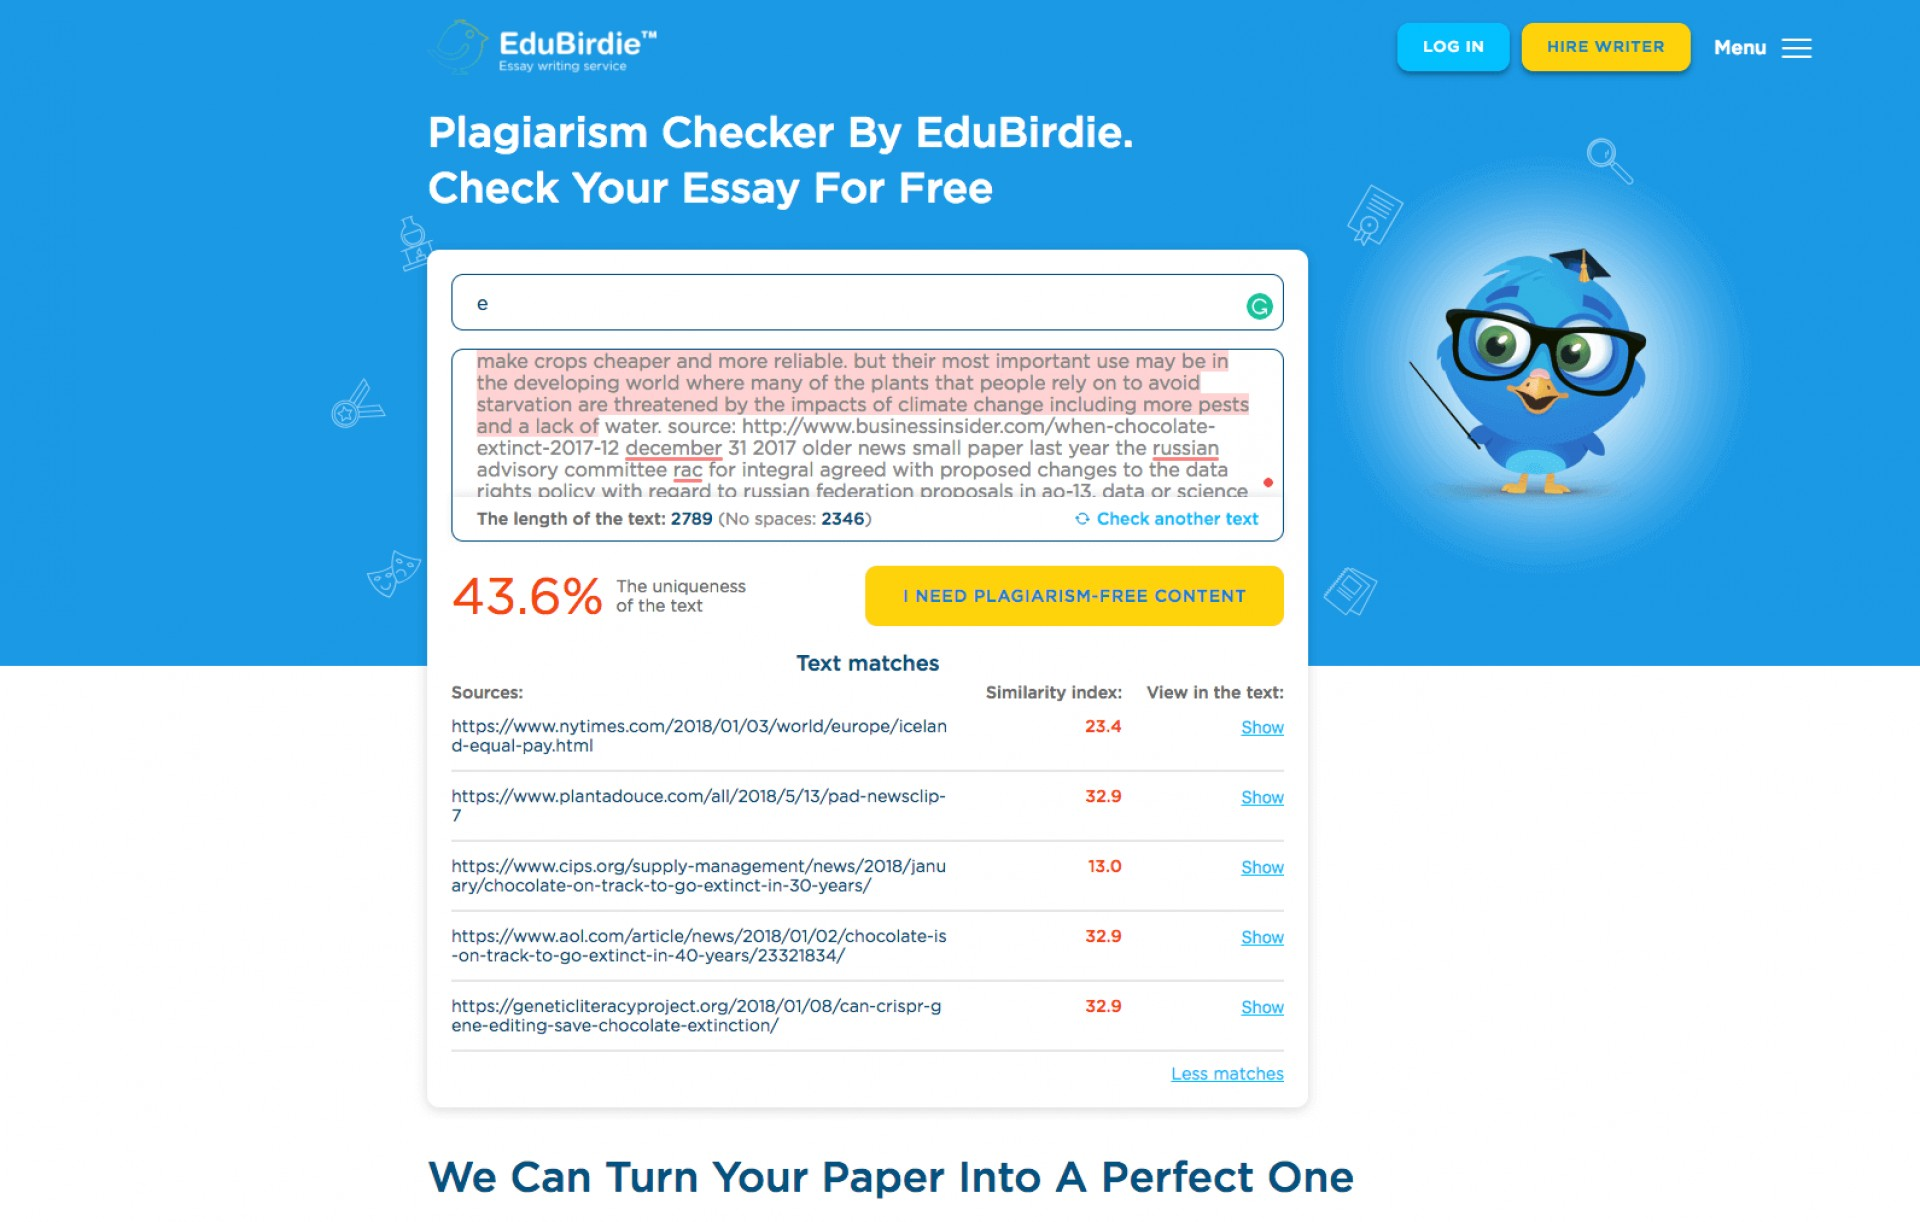 018 Research Paper Edubirdie Online Plagiarism Checker For Papers Stunning Free Students Grammarly With Percentage 1920